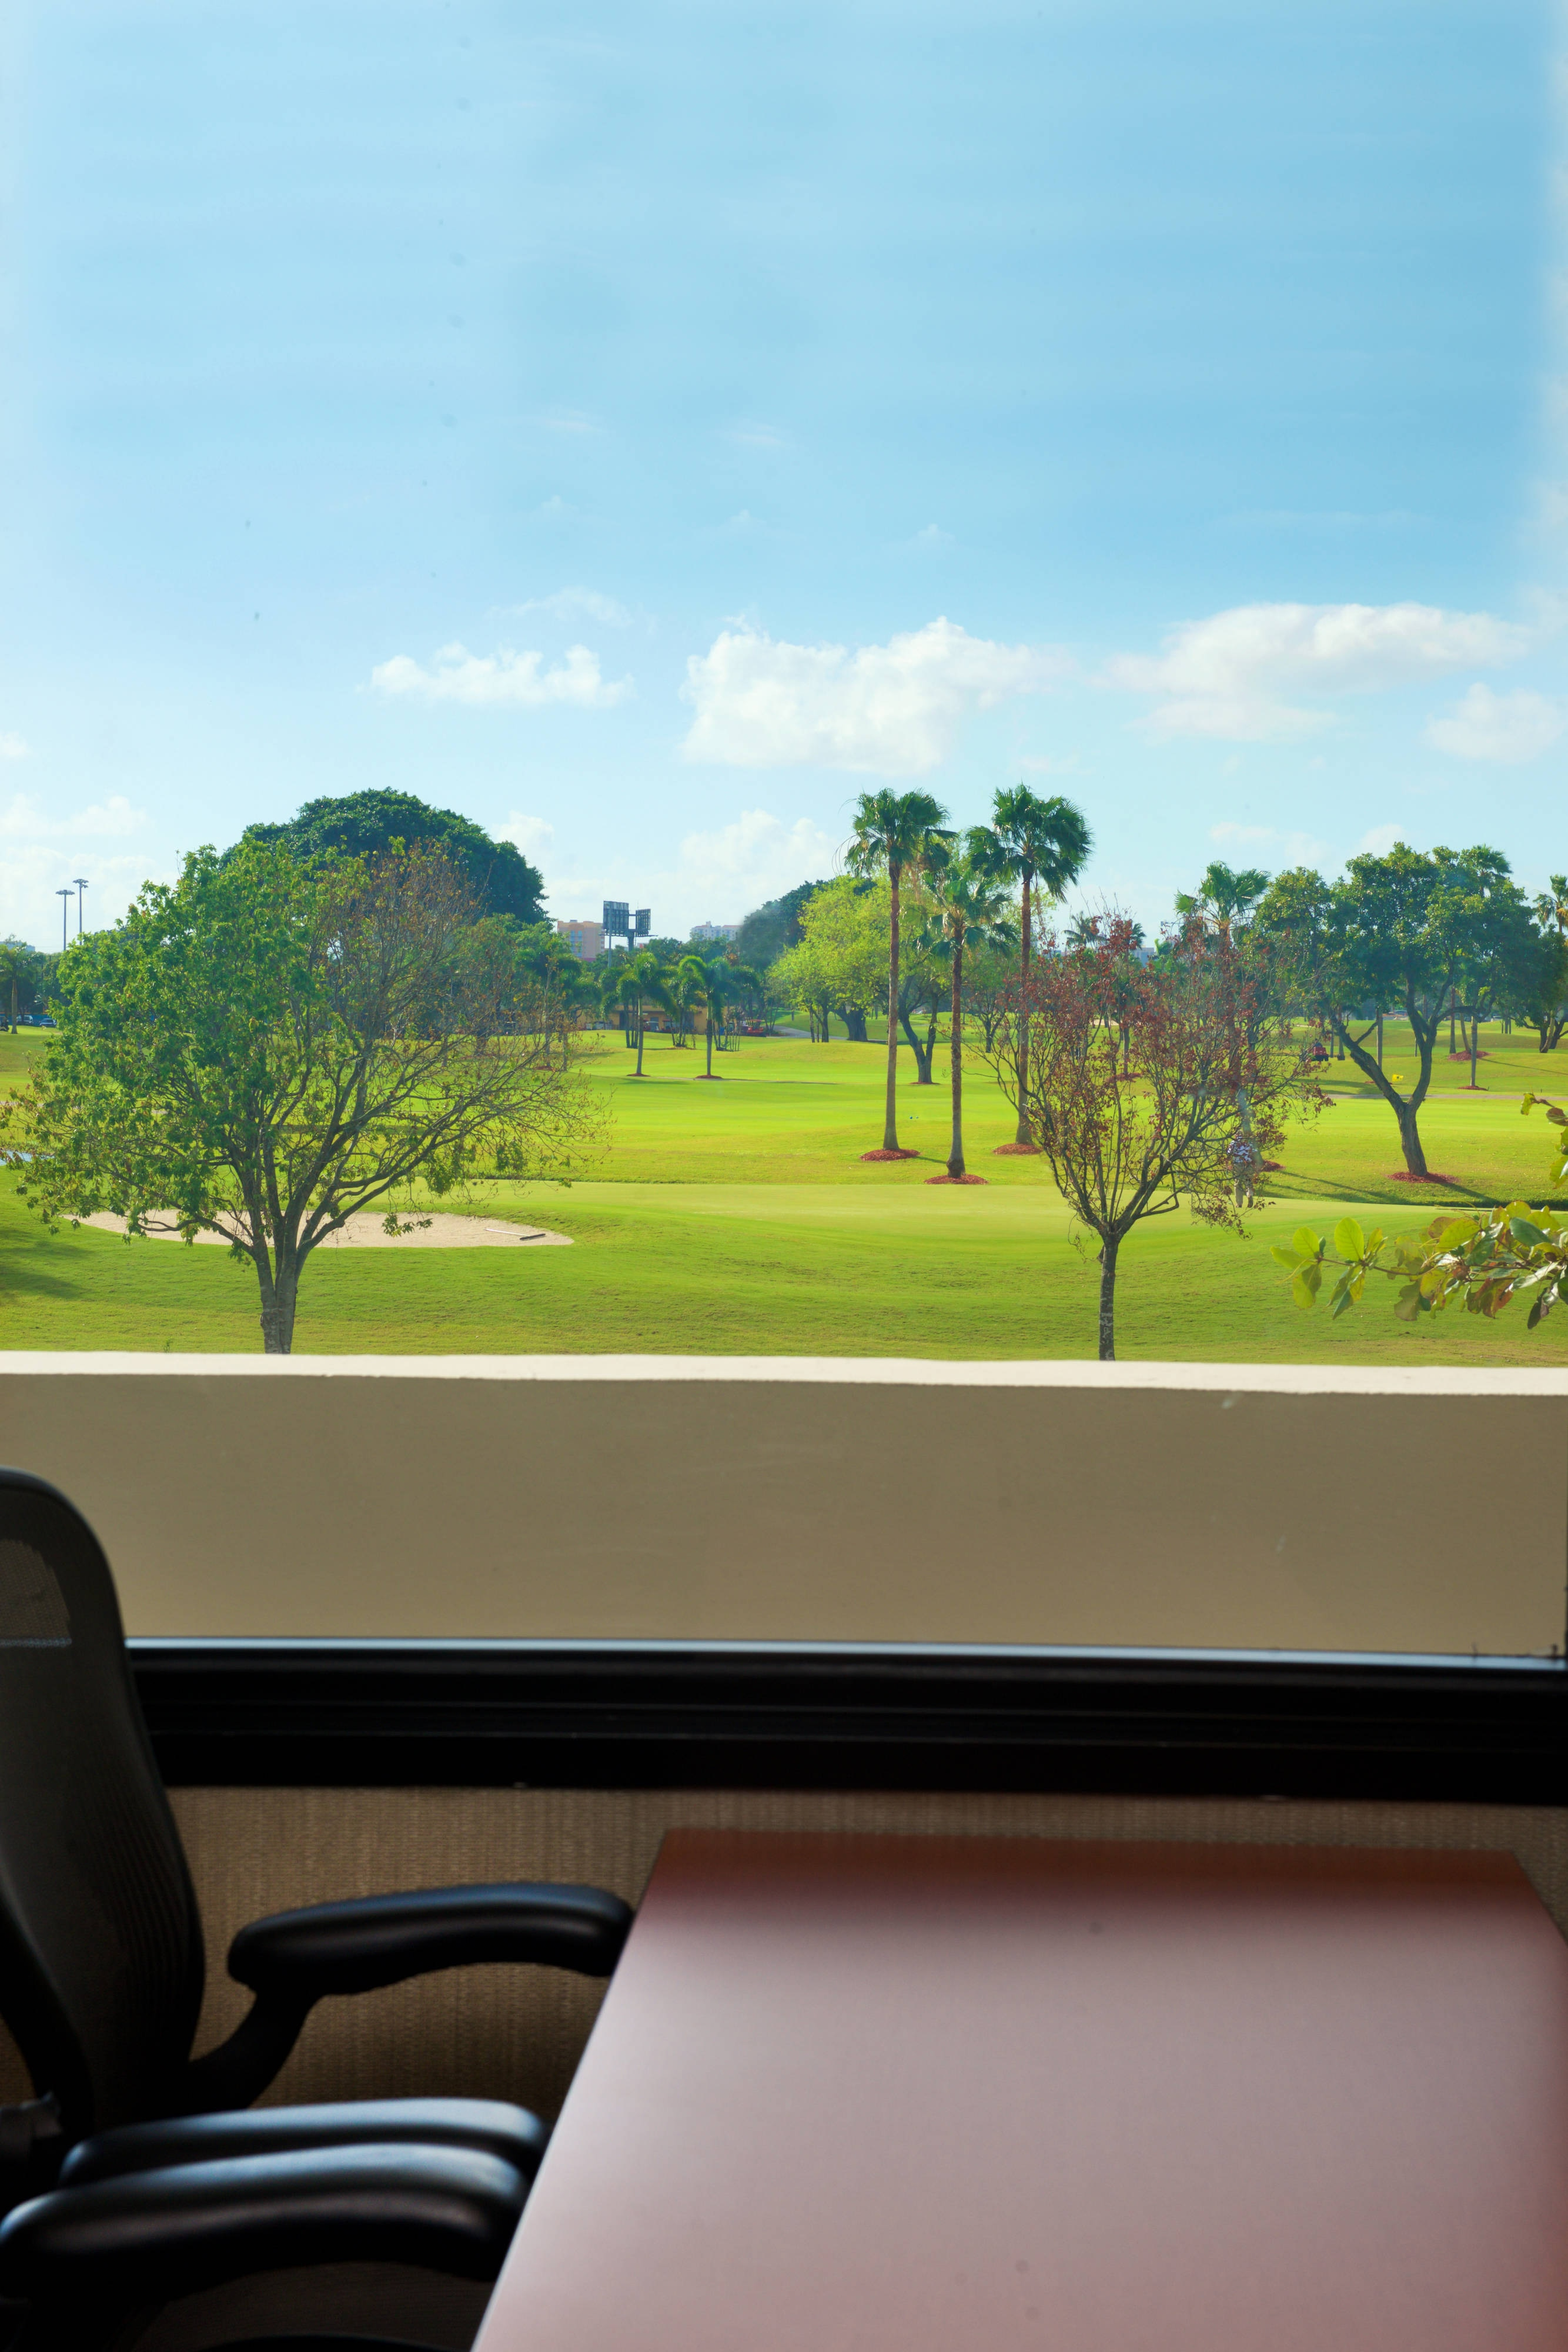 View of Golf Course from California Clipper Meeting Space